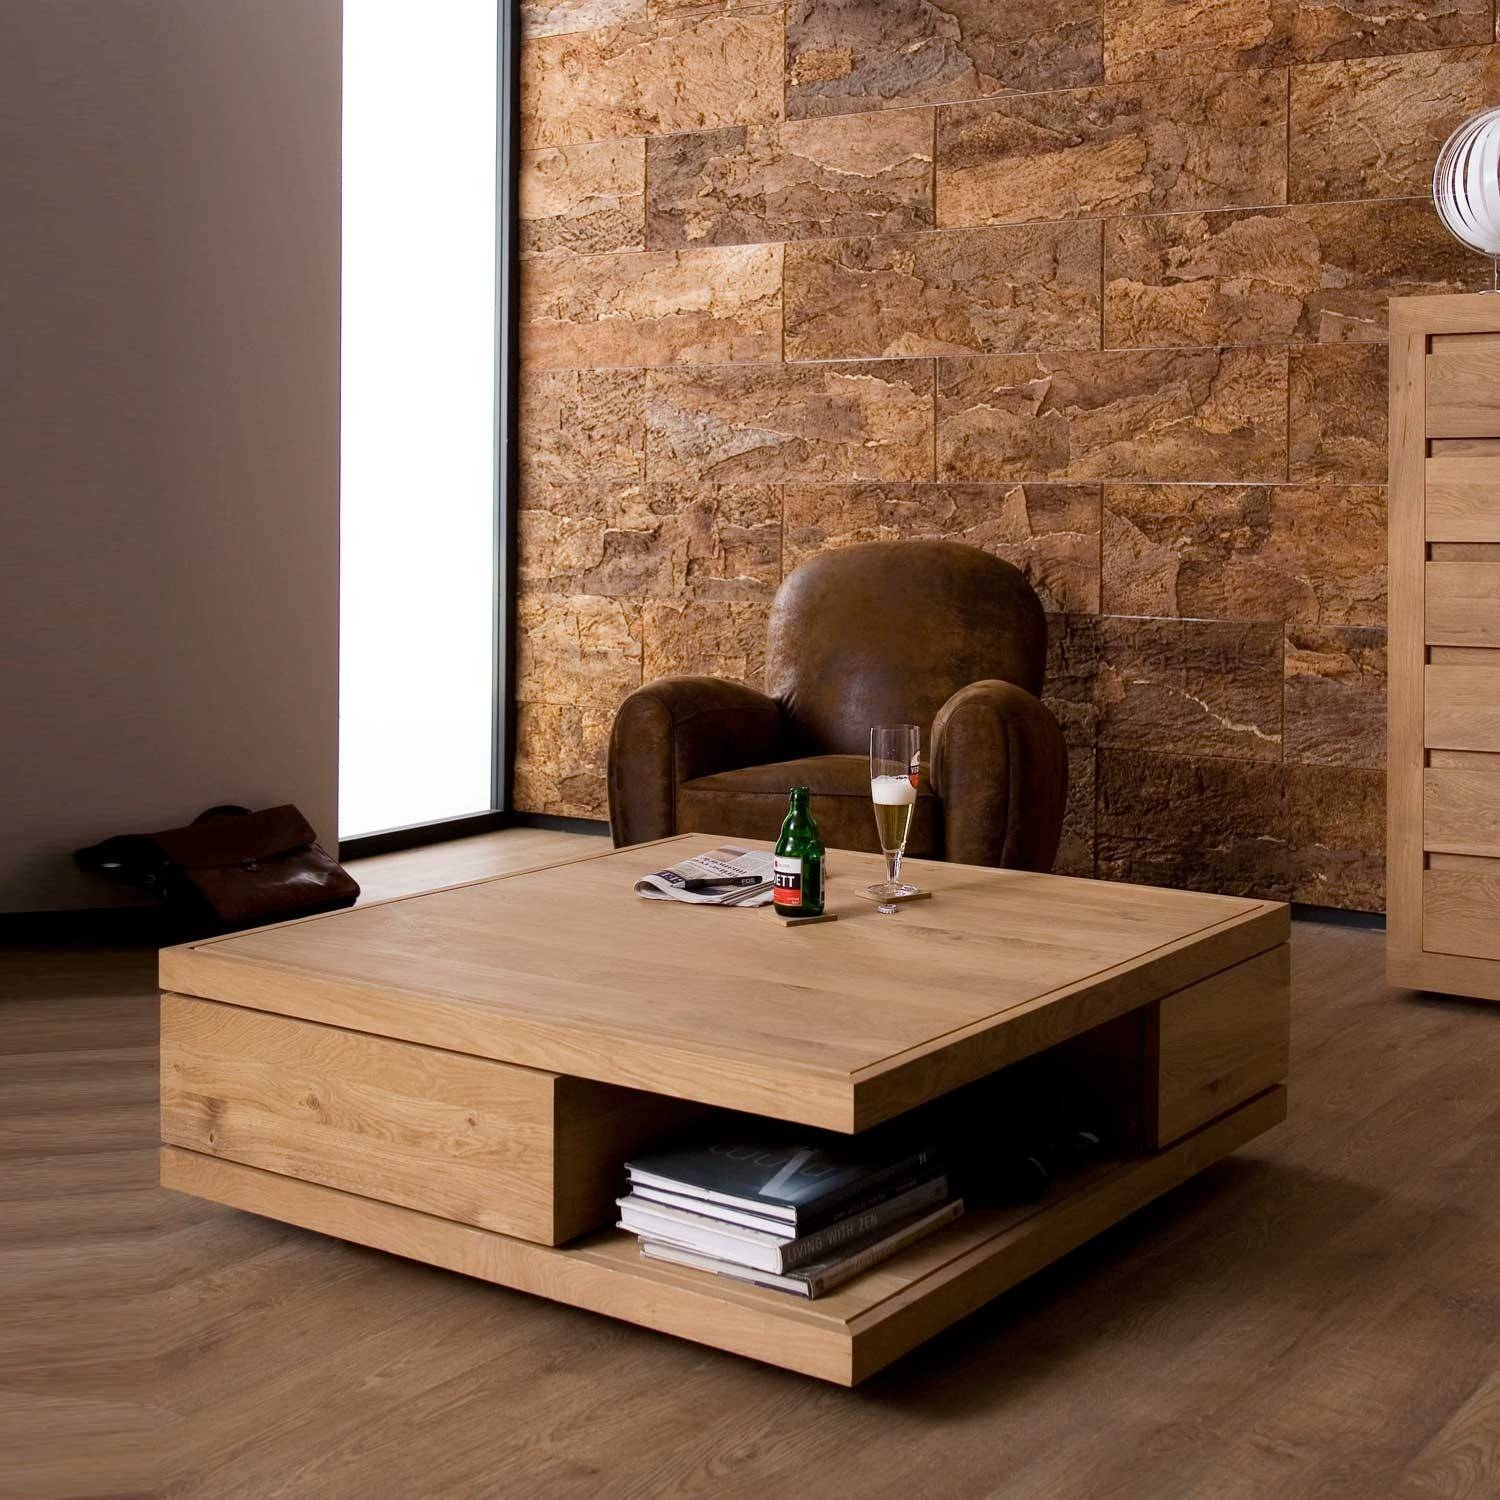 30 Collection of Low Square Wooden Coffee Tables